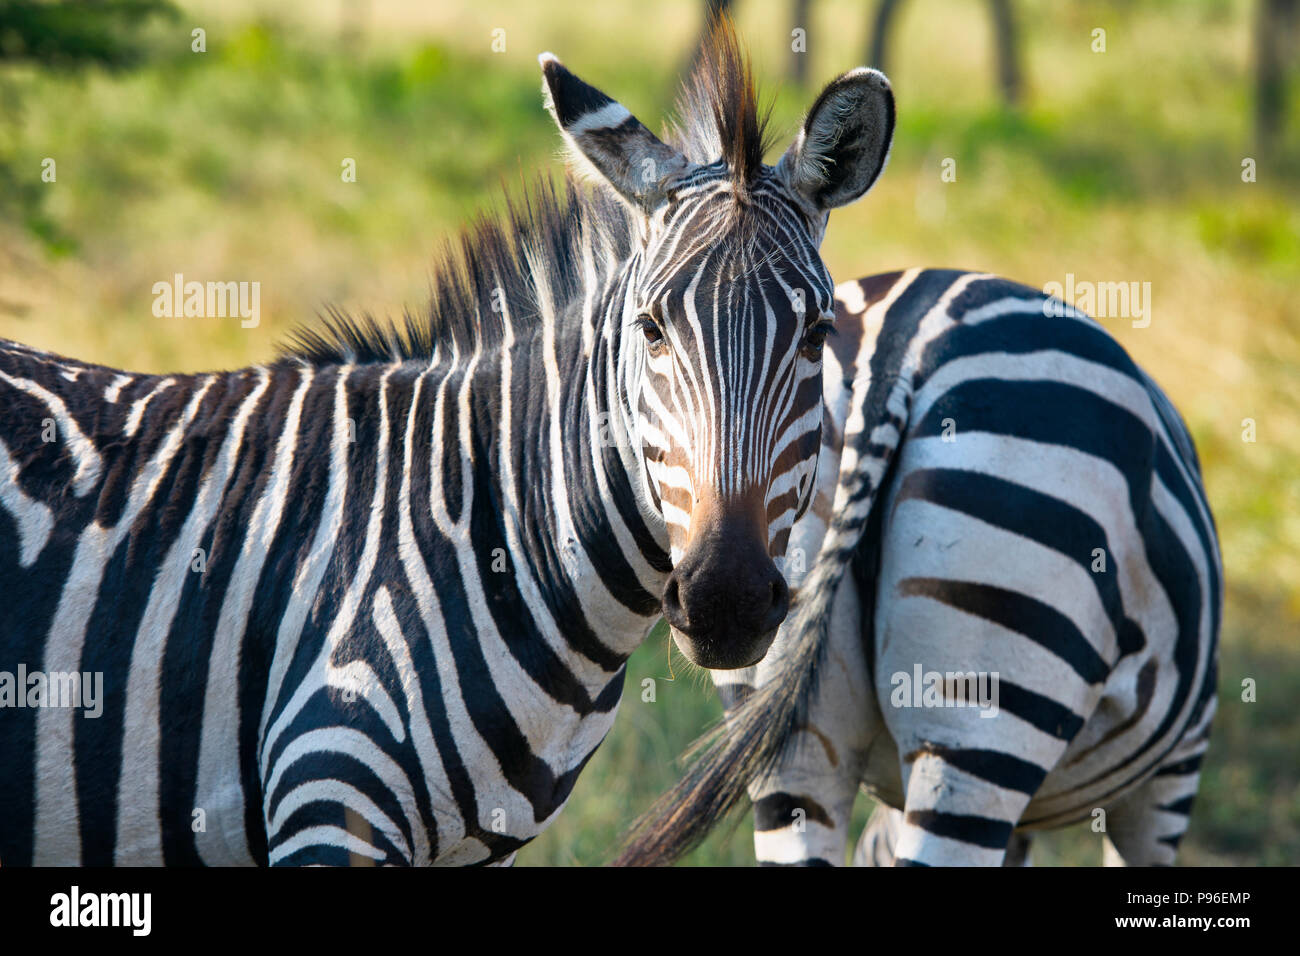 Zebra, Zebras, Equus Quagga, Two, Pair - Stock Image